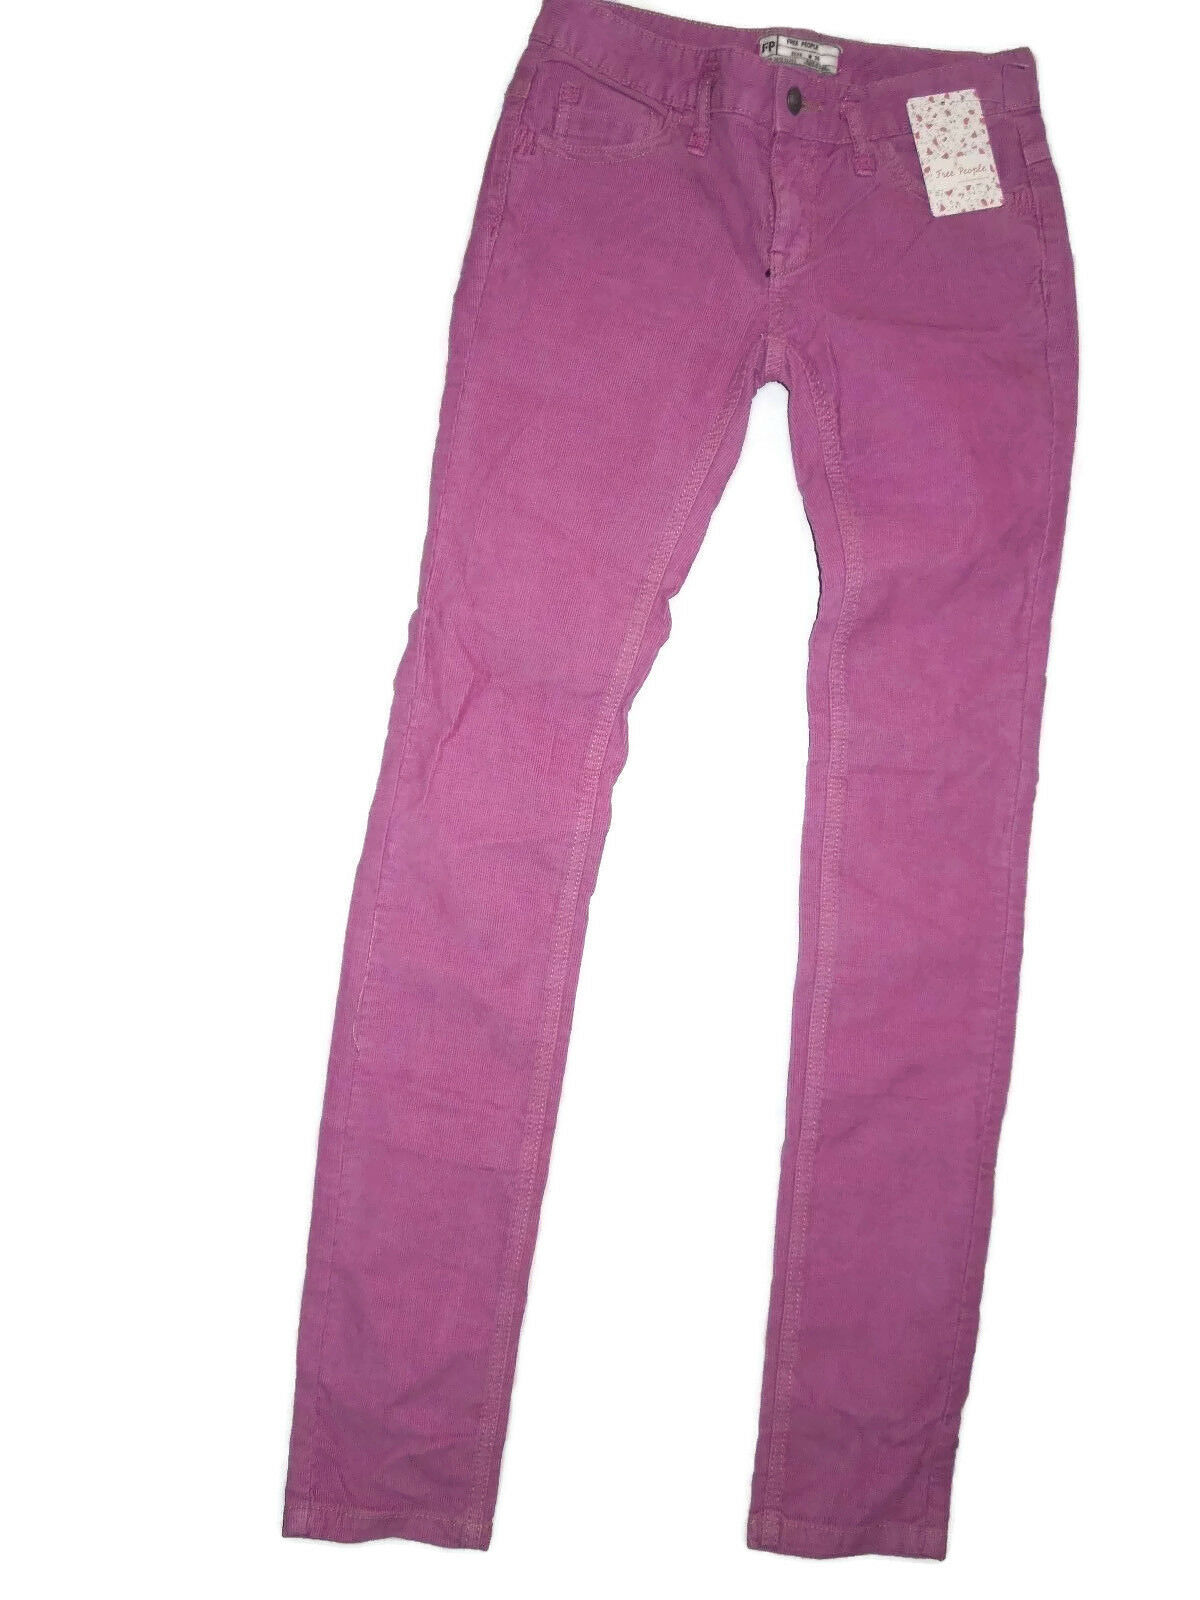 FREE People women's hot pink pink corduroy jeans Size 25